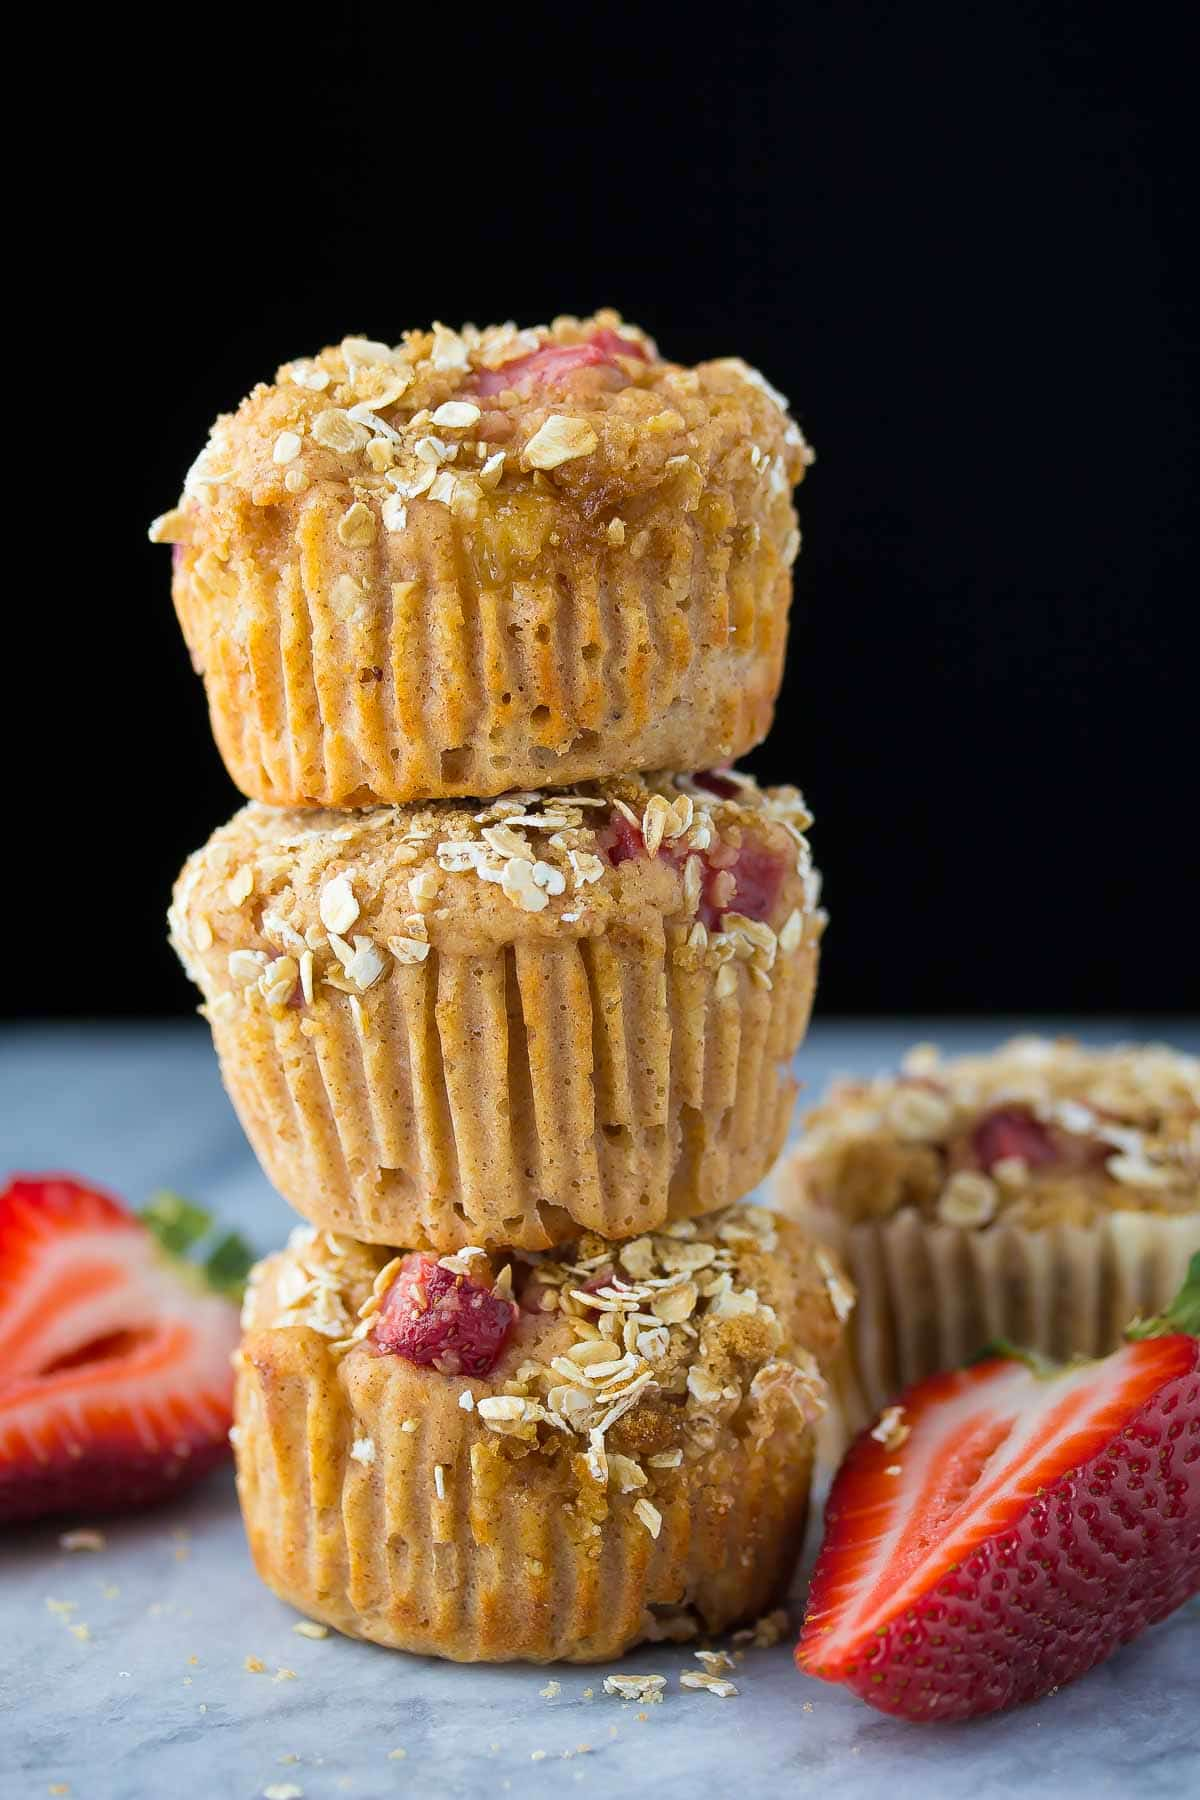 These strawberry apple crumble muffins will satisfy your muffin cravings while keeping things healthy. No butter or oil, half whole wheat flour, and only 140 calories each!